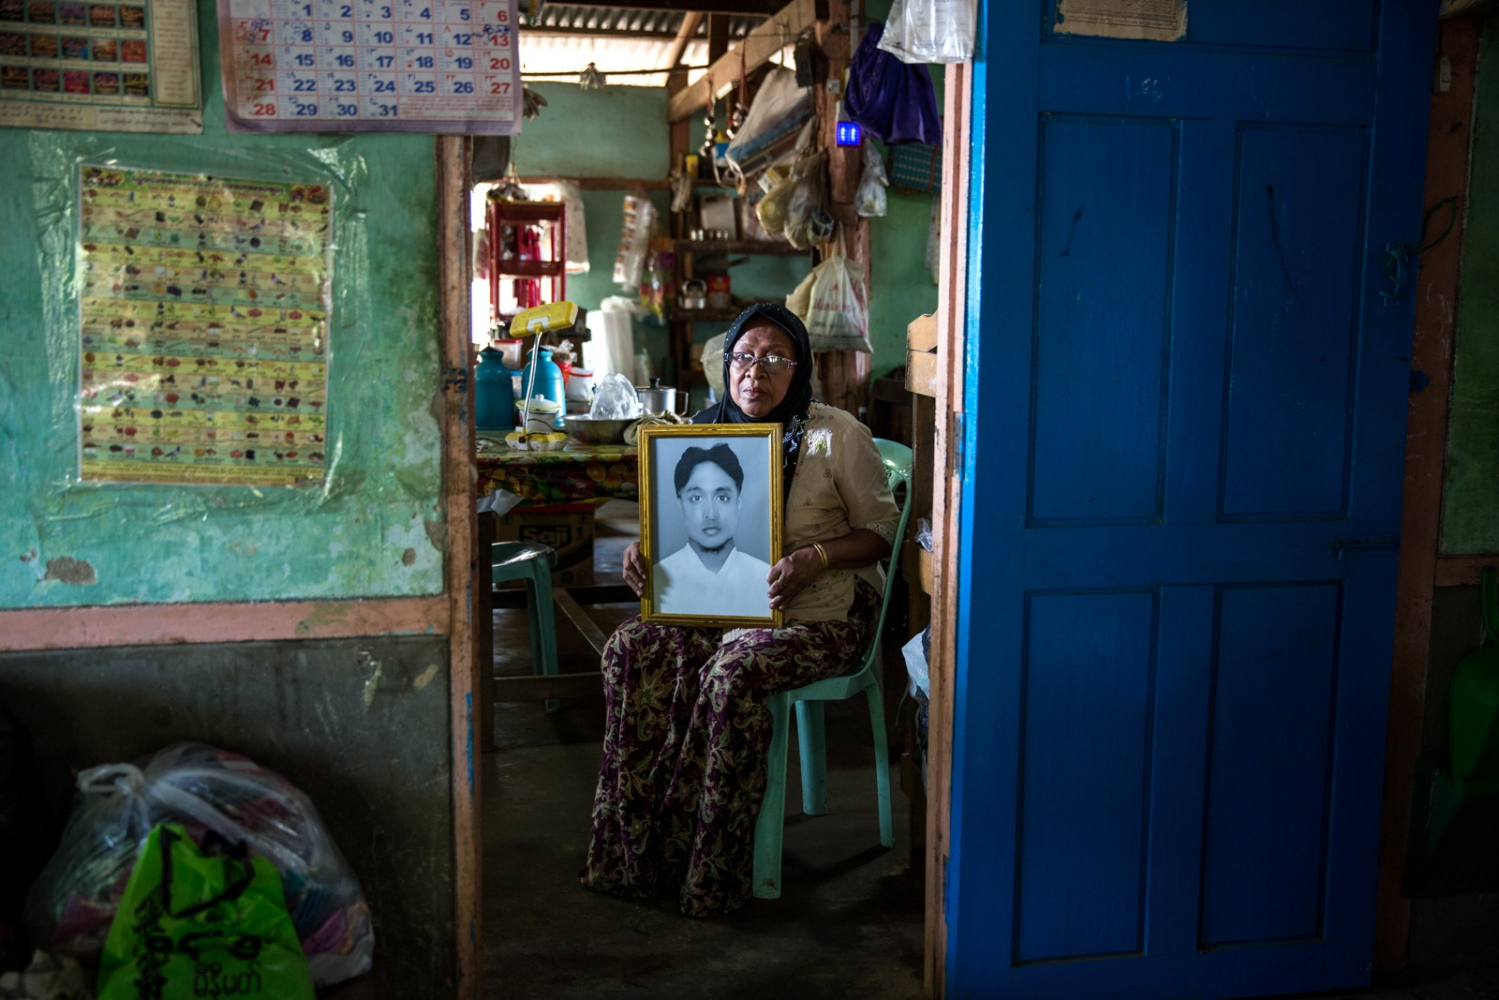 The aunt of arbitrarily detained Myo Min Naing, 32, holds her nephew's portrait. Myanmar military intelligence arrested Myo Min Naing, following his wedding in Kunhein, Shan State on August 9, 2014. On January 12, 2015, the Taunggyi District Court sentenced Myo Min Naing in a trial that failed to meet fair trial standards to 14 years' imprisonment with hard labor under sections 5(J) and 5(L) of the 1950 Emergency Provisions Act. In October 2016, the Myanmar government repealed the notoriously controversial 1950 Emergency Provisions Act, yet Myo Min Naing remains detained in Pathein prison under the now defunct Act.